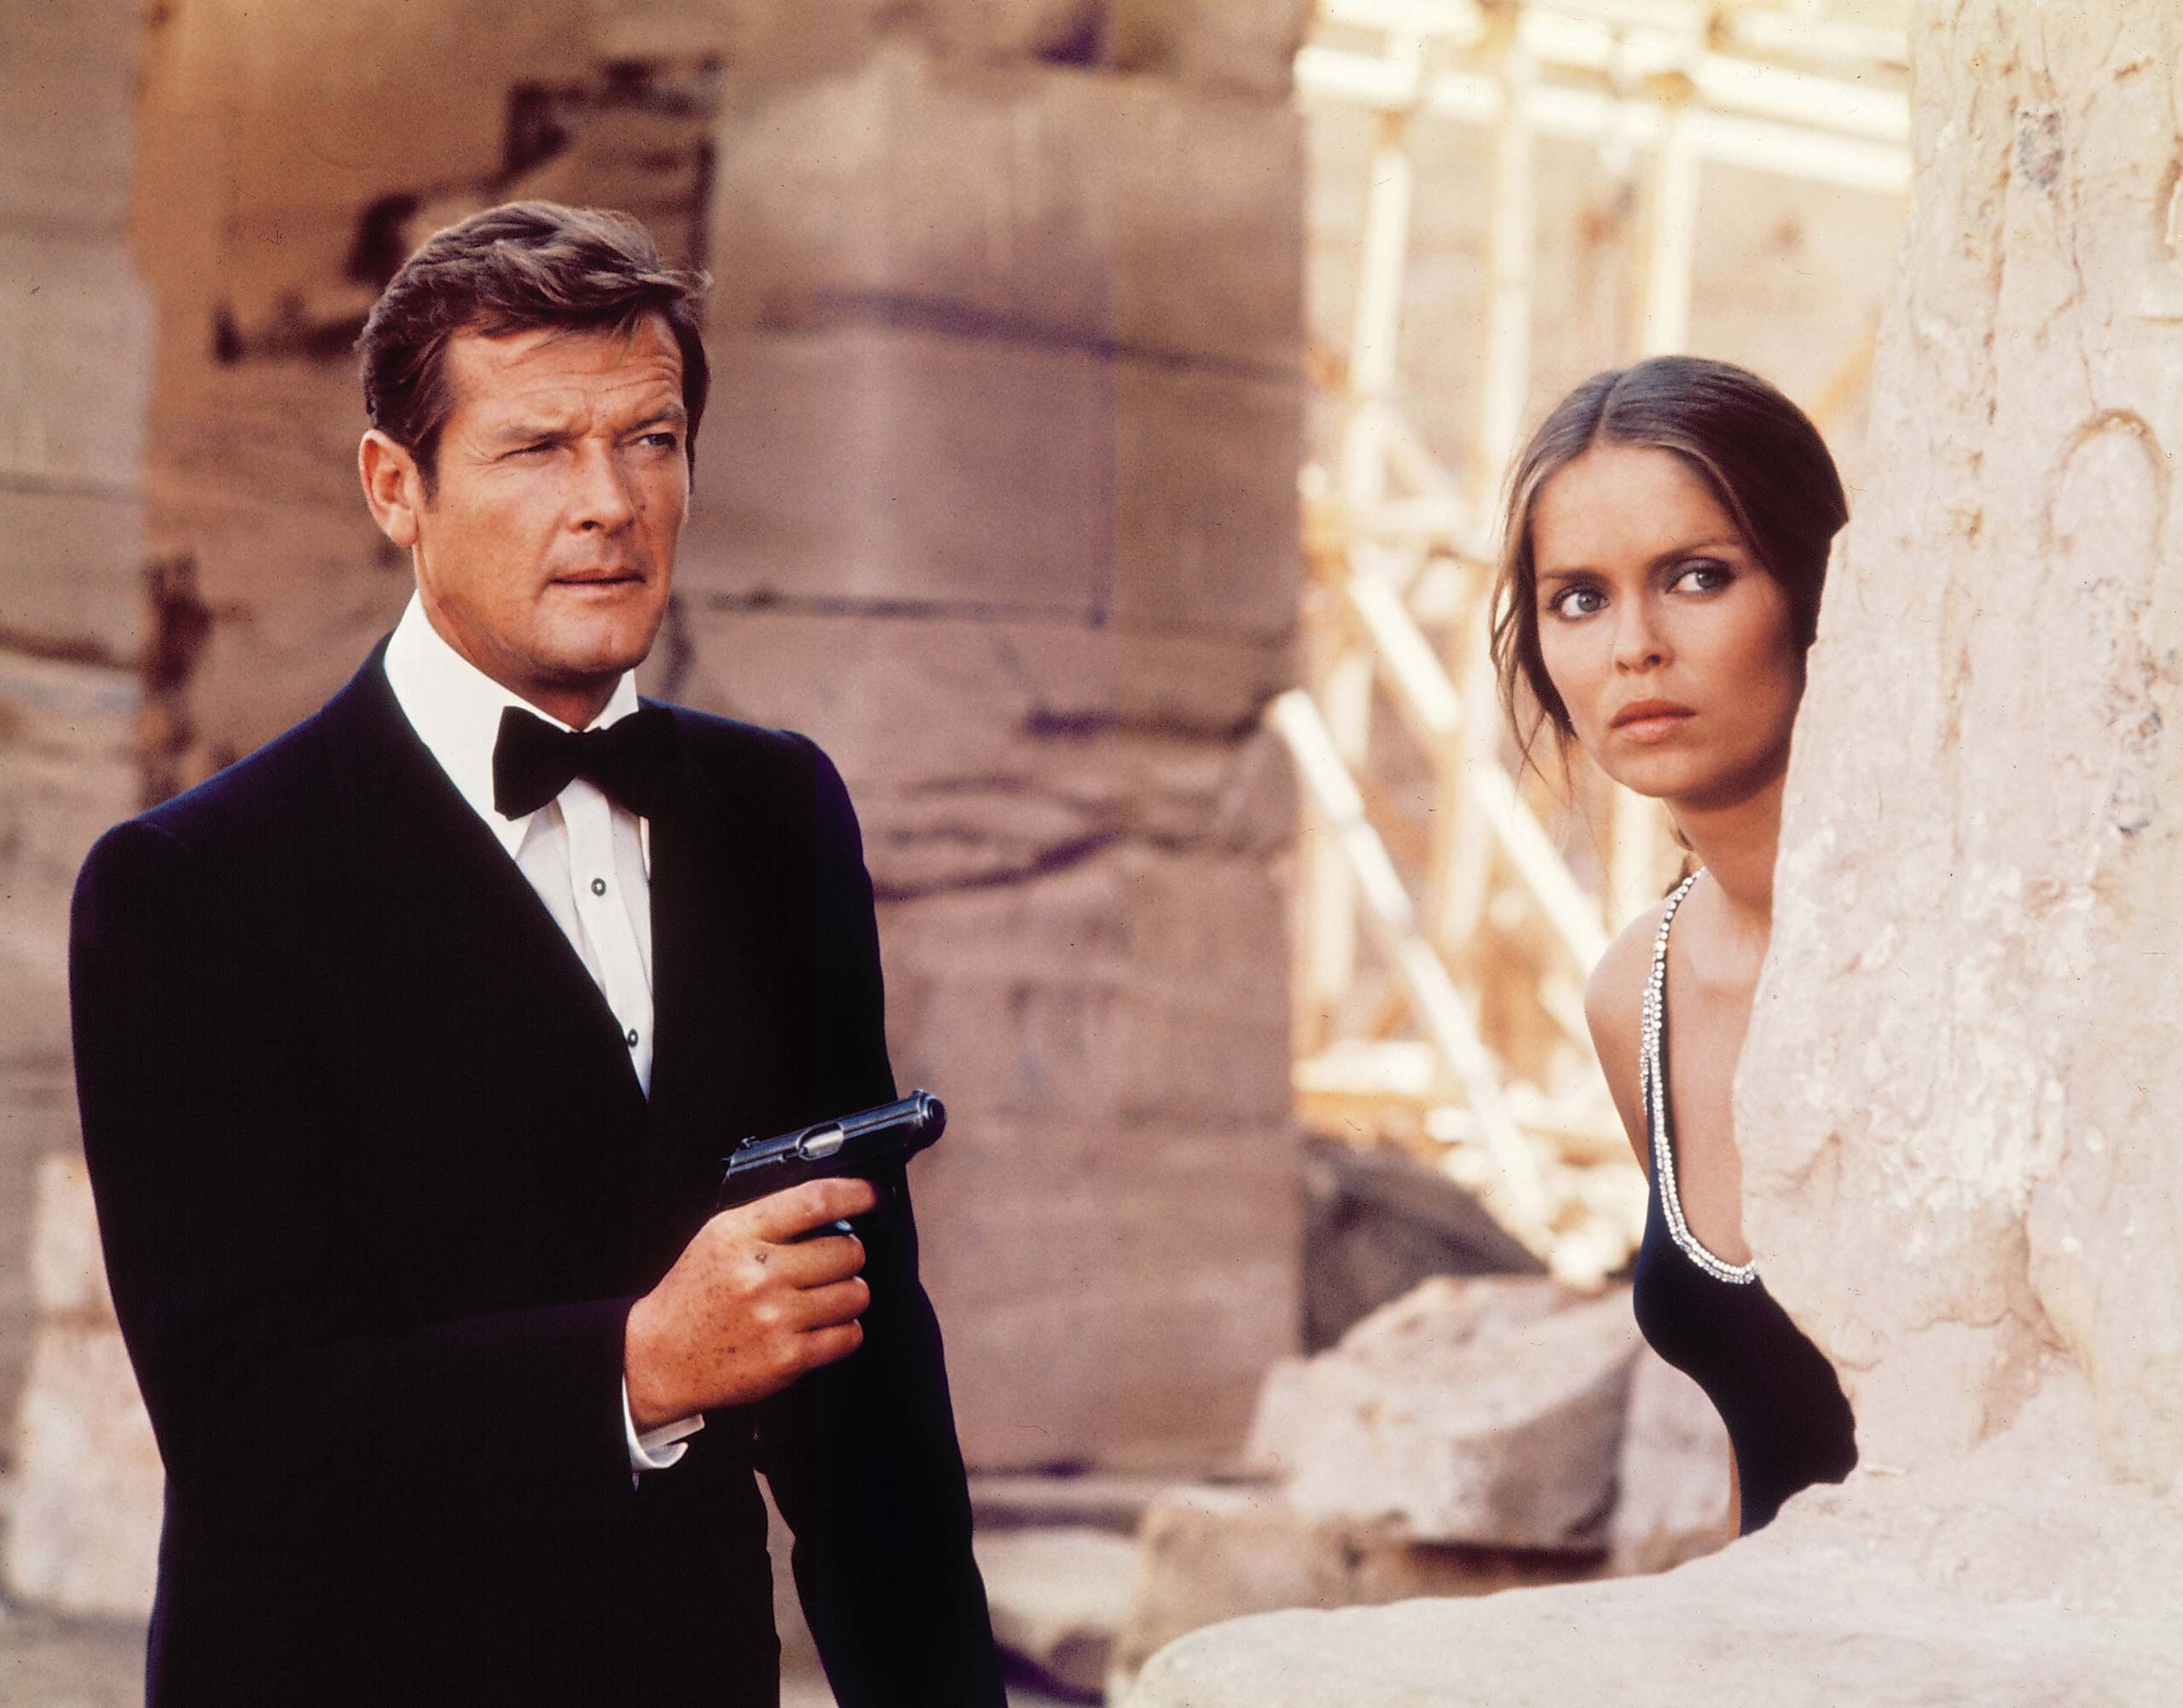 <strong><i>The Spy Who Loved Me</i> (1977) - Roger Moore</strong>